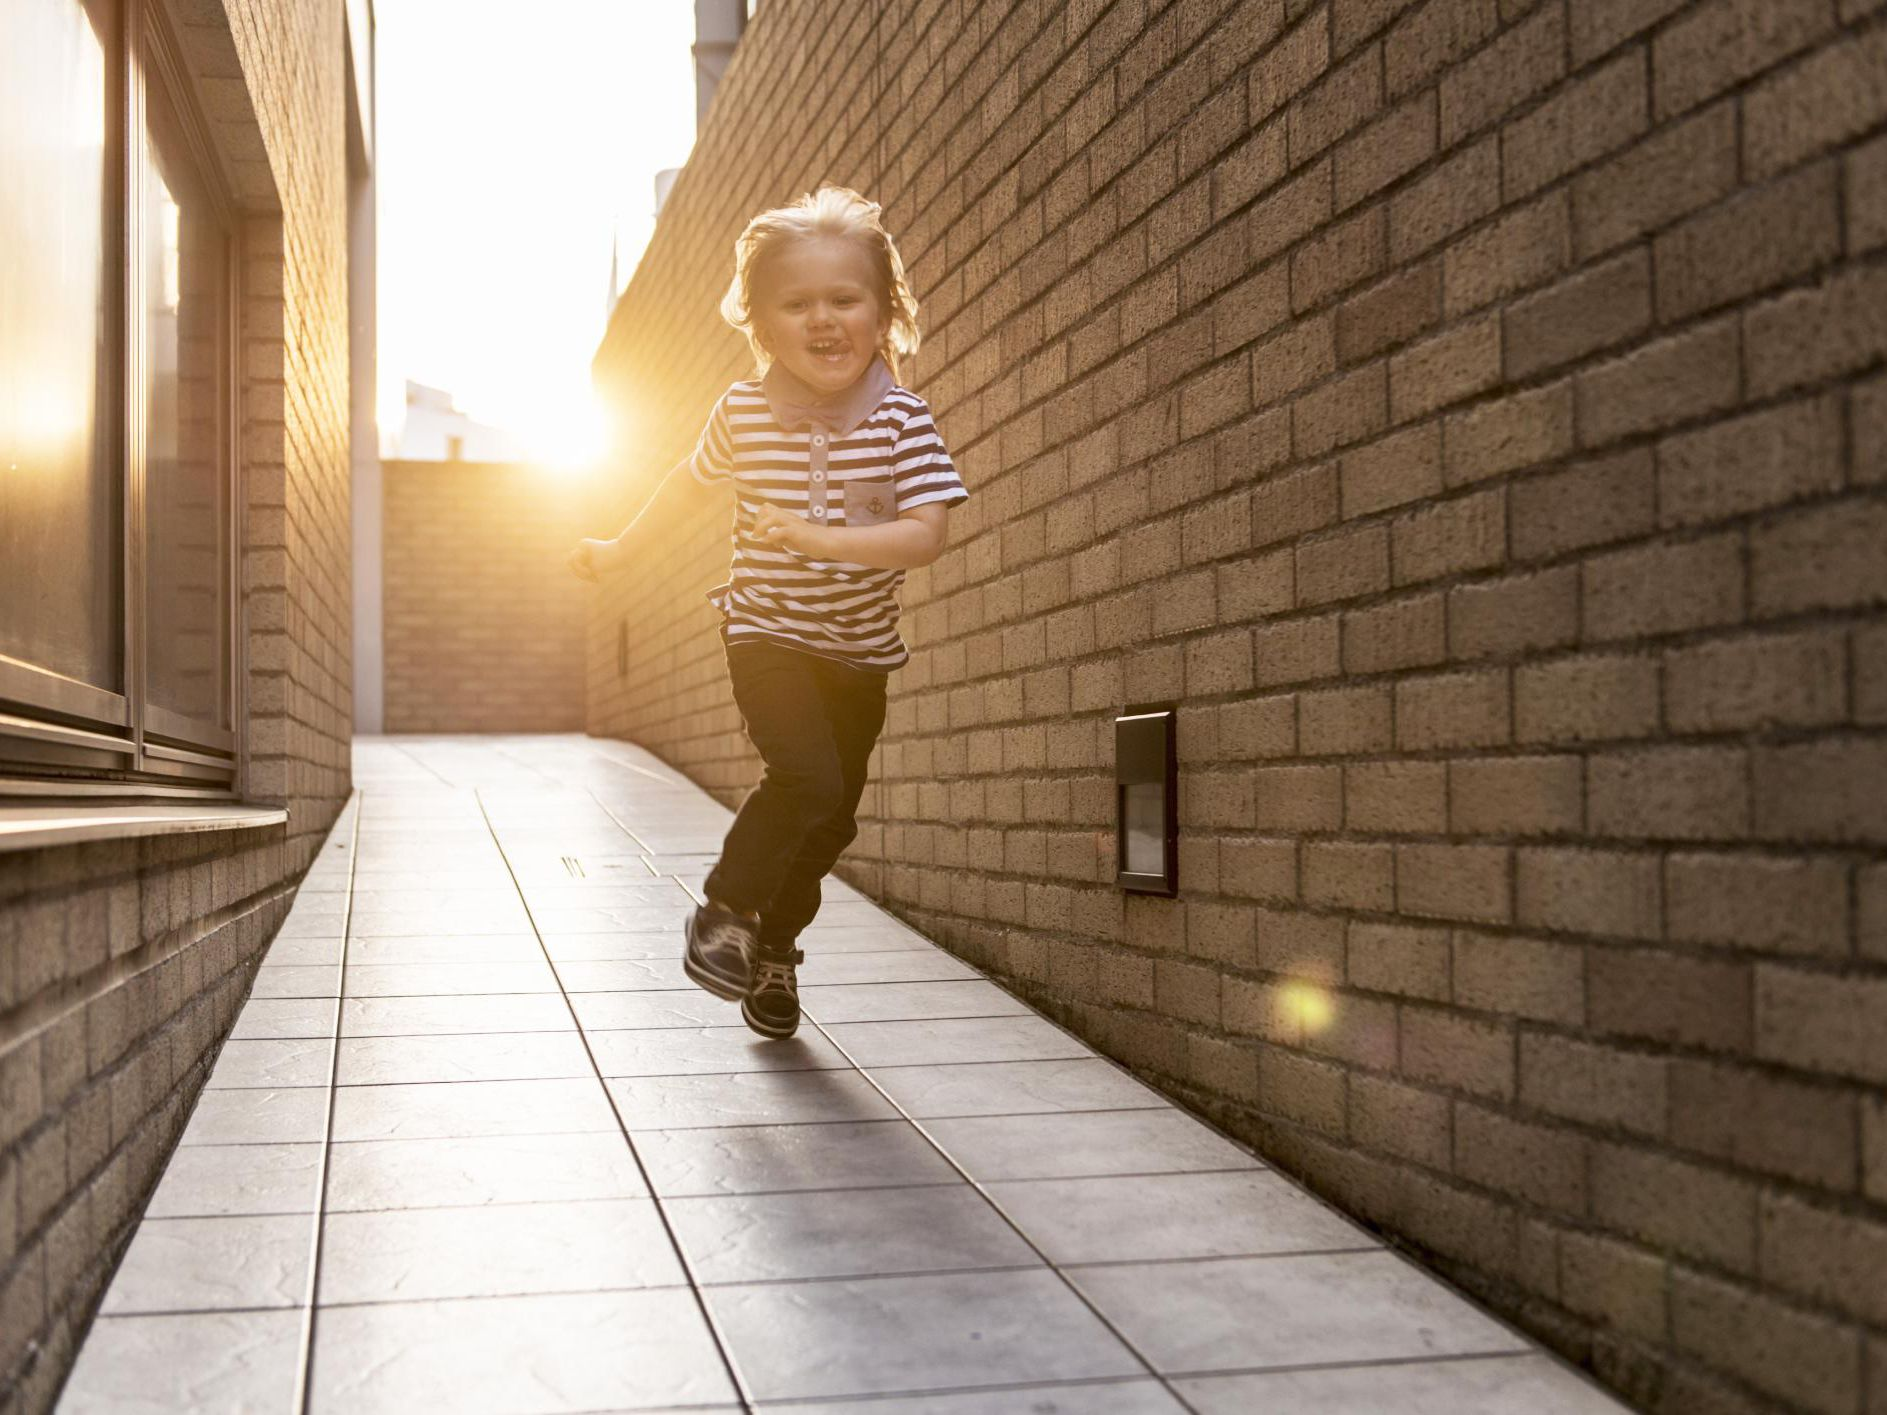 Sudden Behavioral Changes and Warning Signs in Children